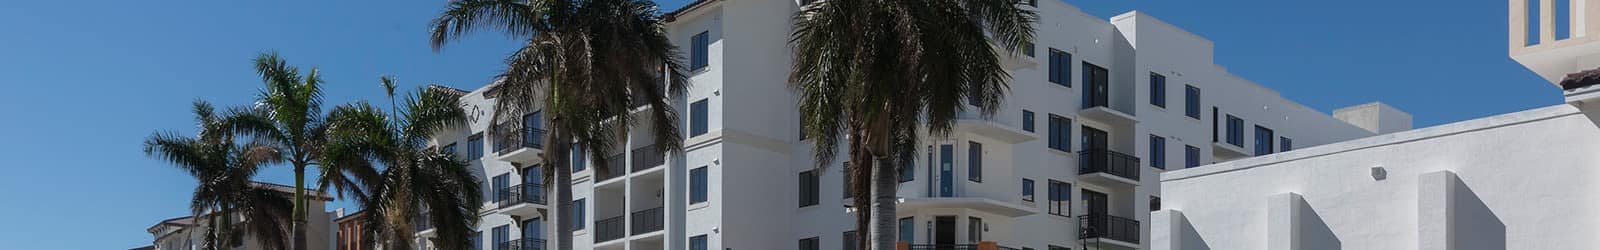 Schedule a tour of 500 OCEAN Apartments in Boynton Beach, FL